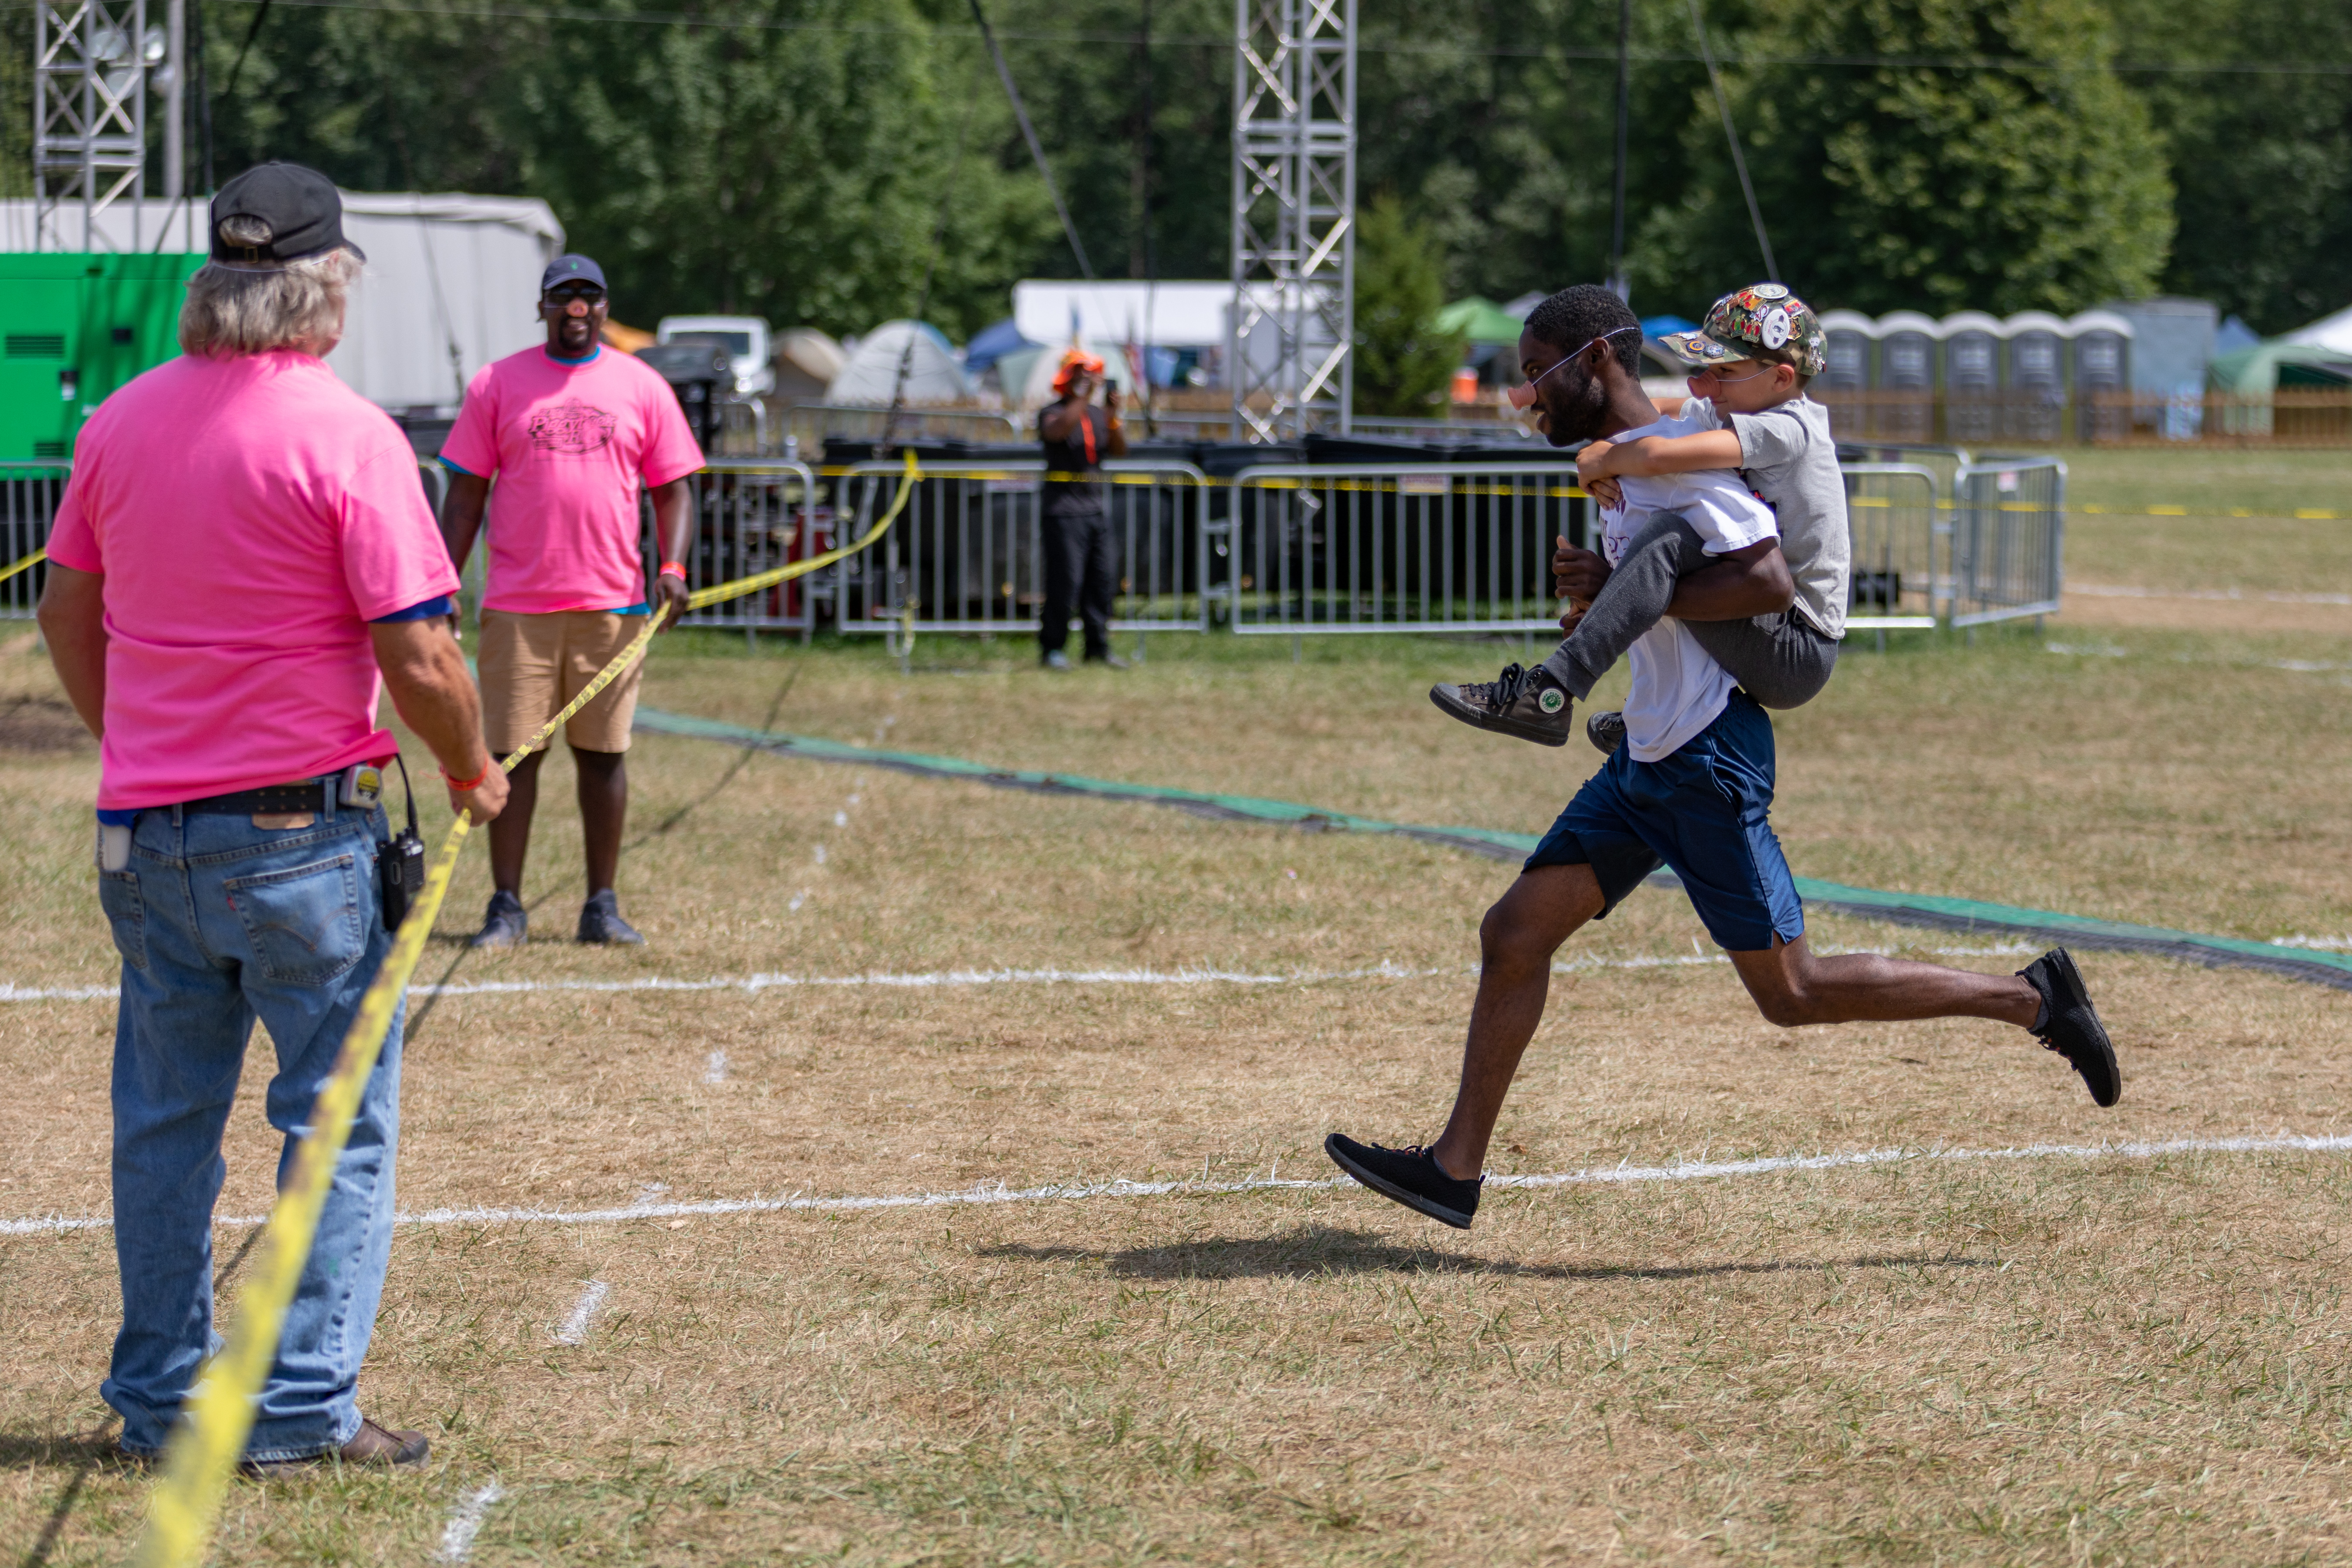 oshkosh 2019 piggy back race winner Anthony White photo